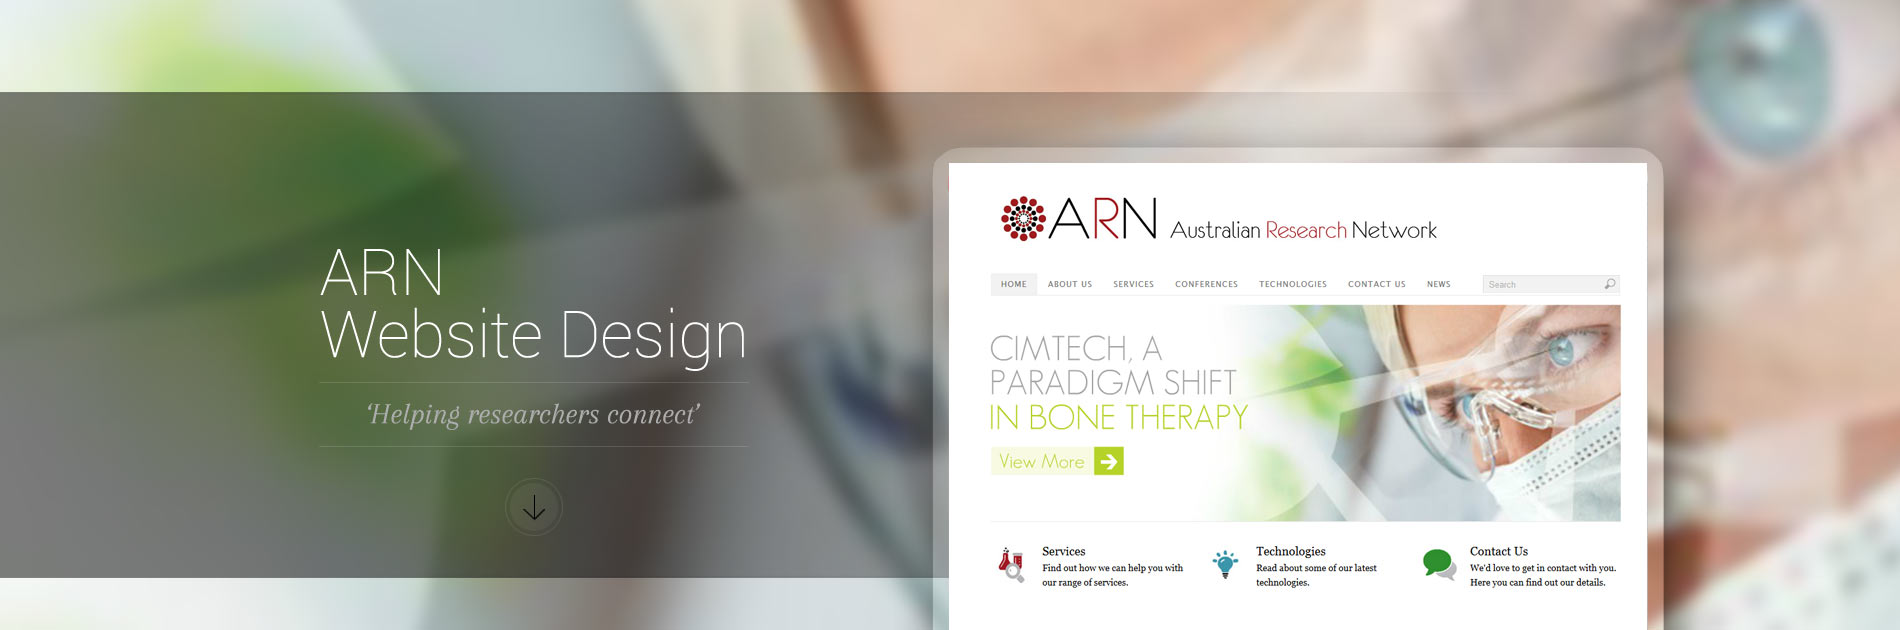 ARN Website Design